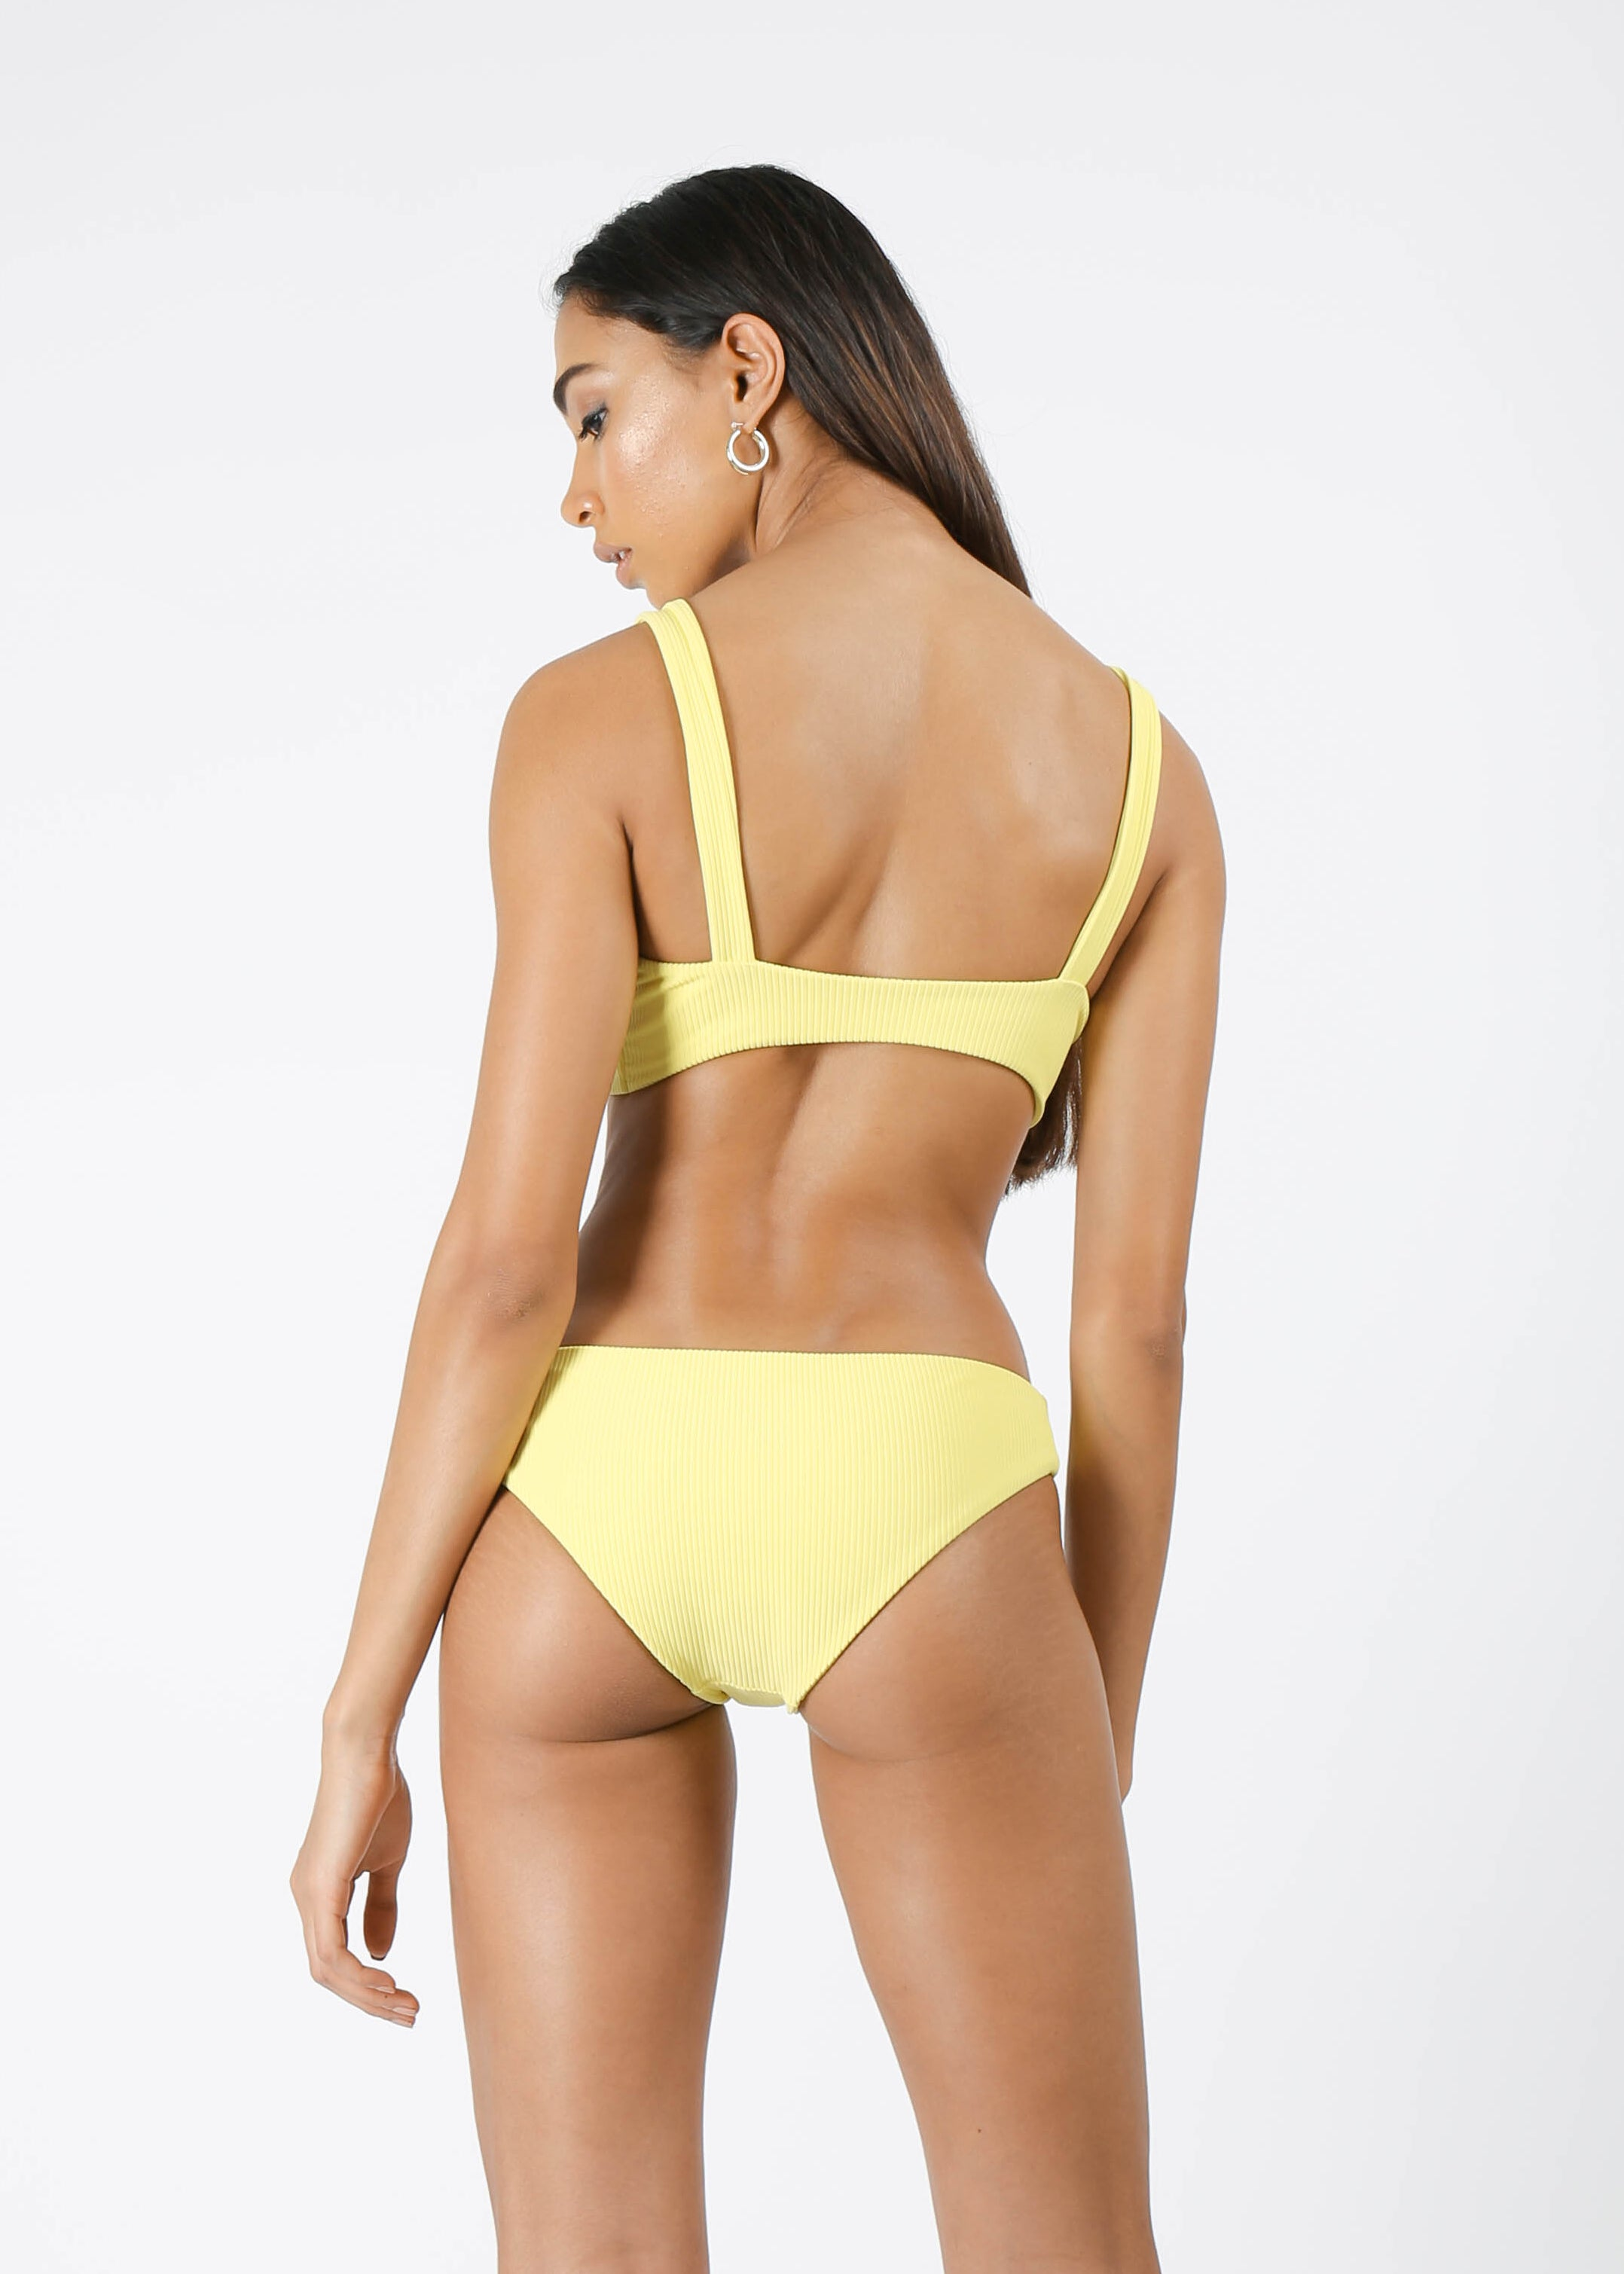 Rumi Bottom - Ribbed Lemon